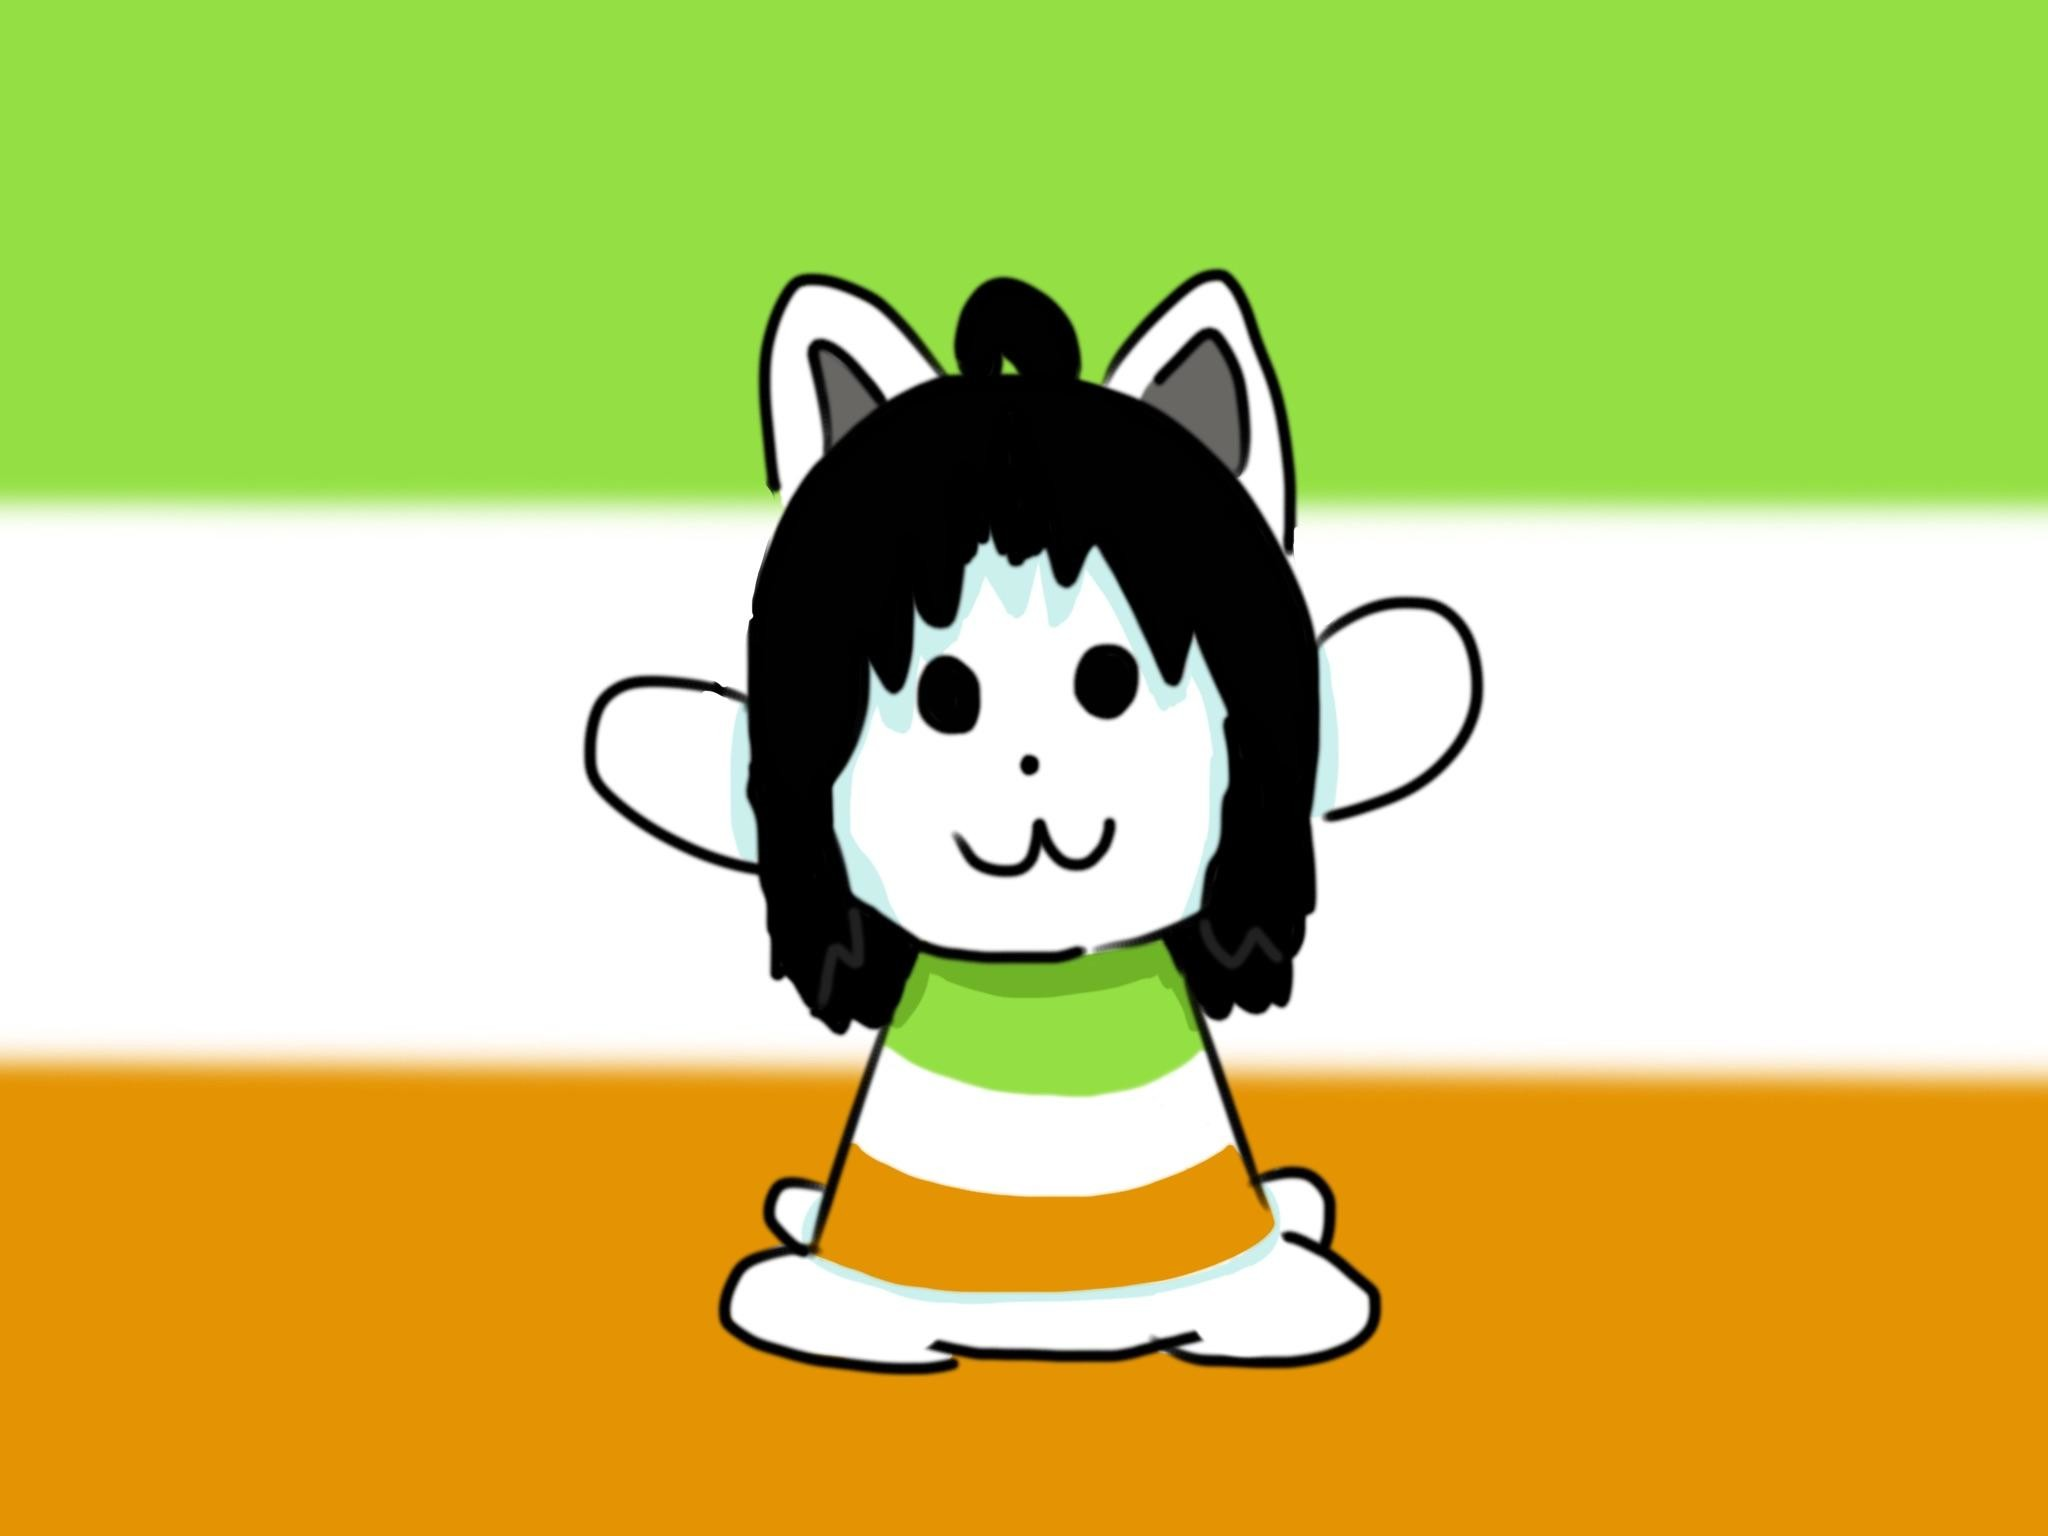 Drew Ireland Temmie in celebration of the alliance of /r/Ireland and /r/ Undertale on /r/Place!